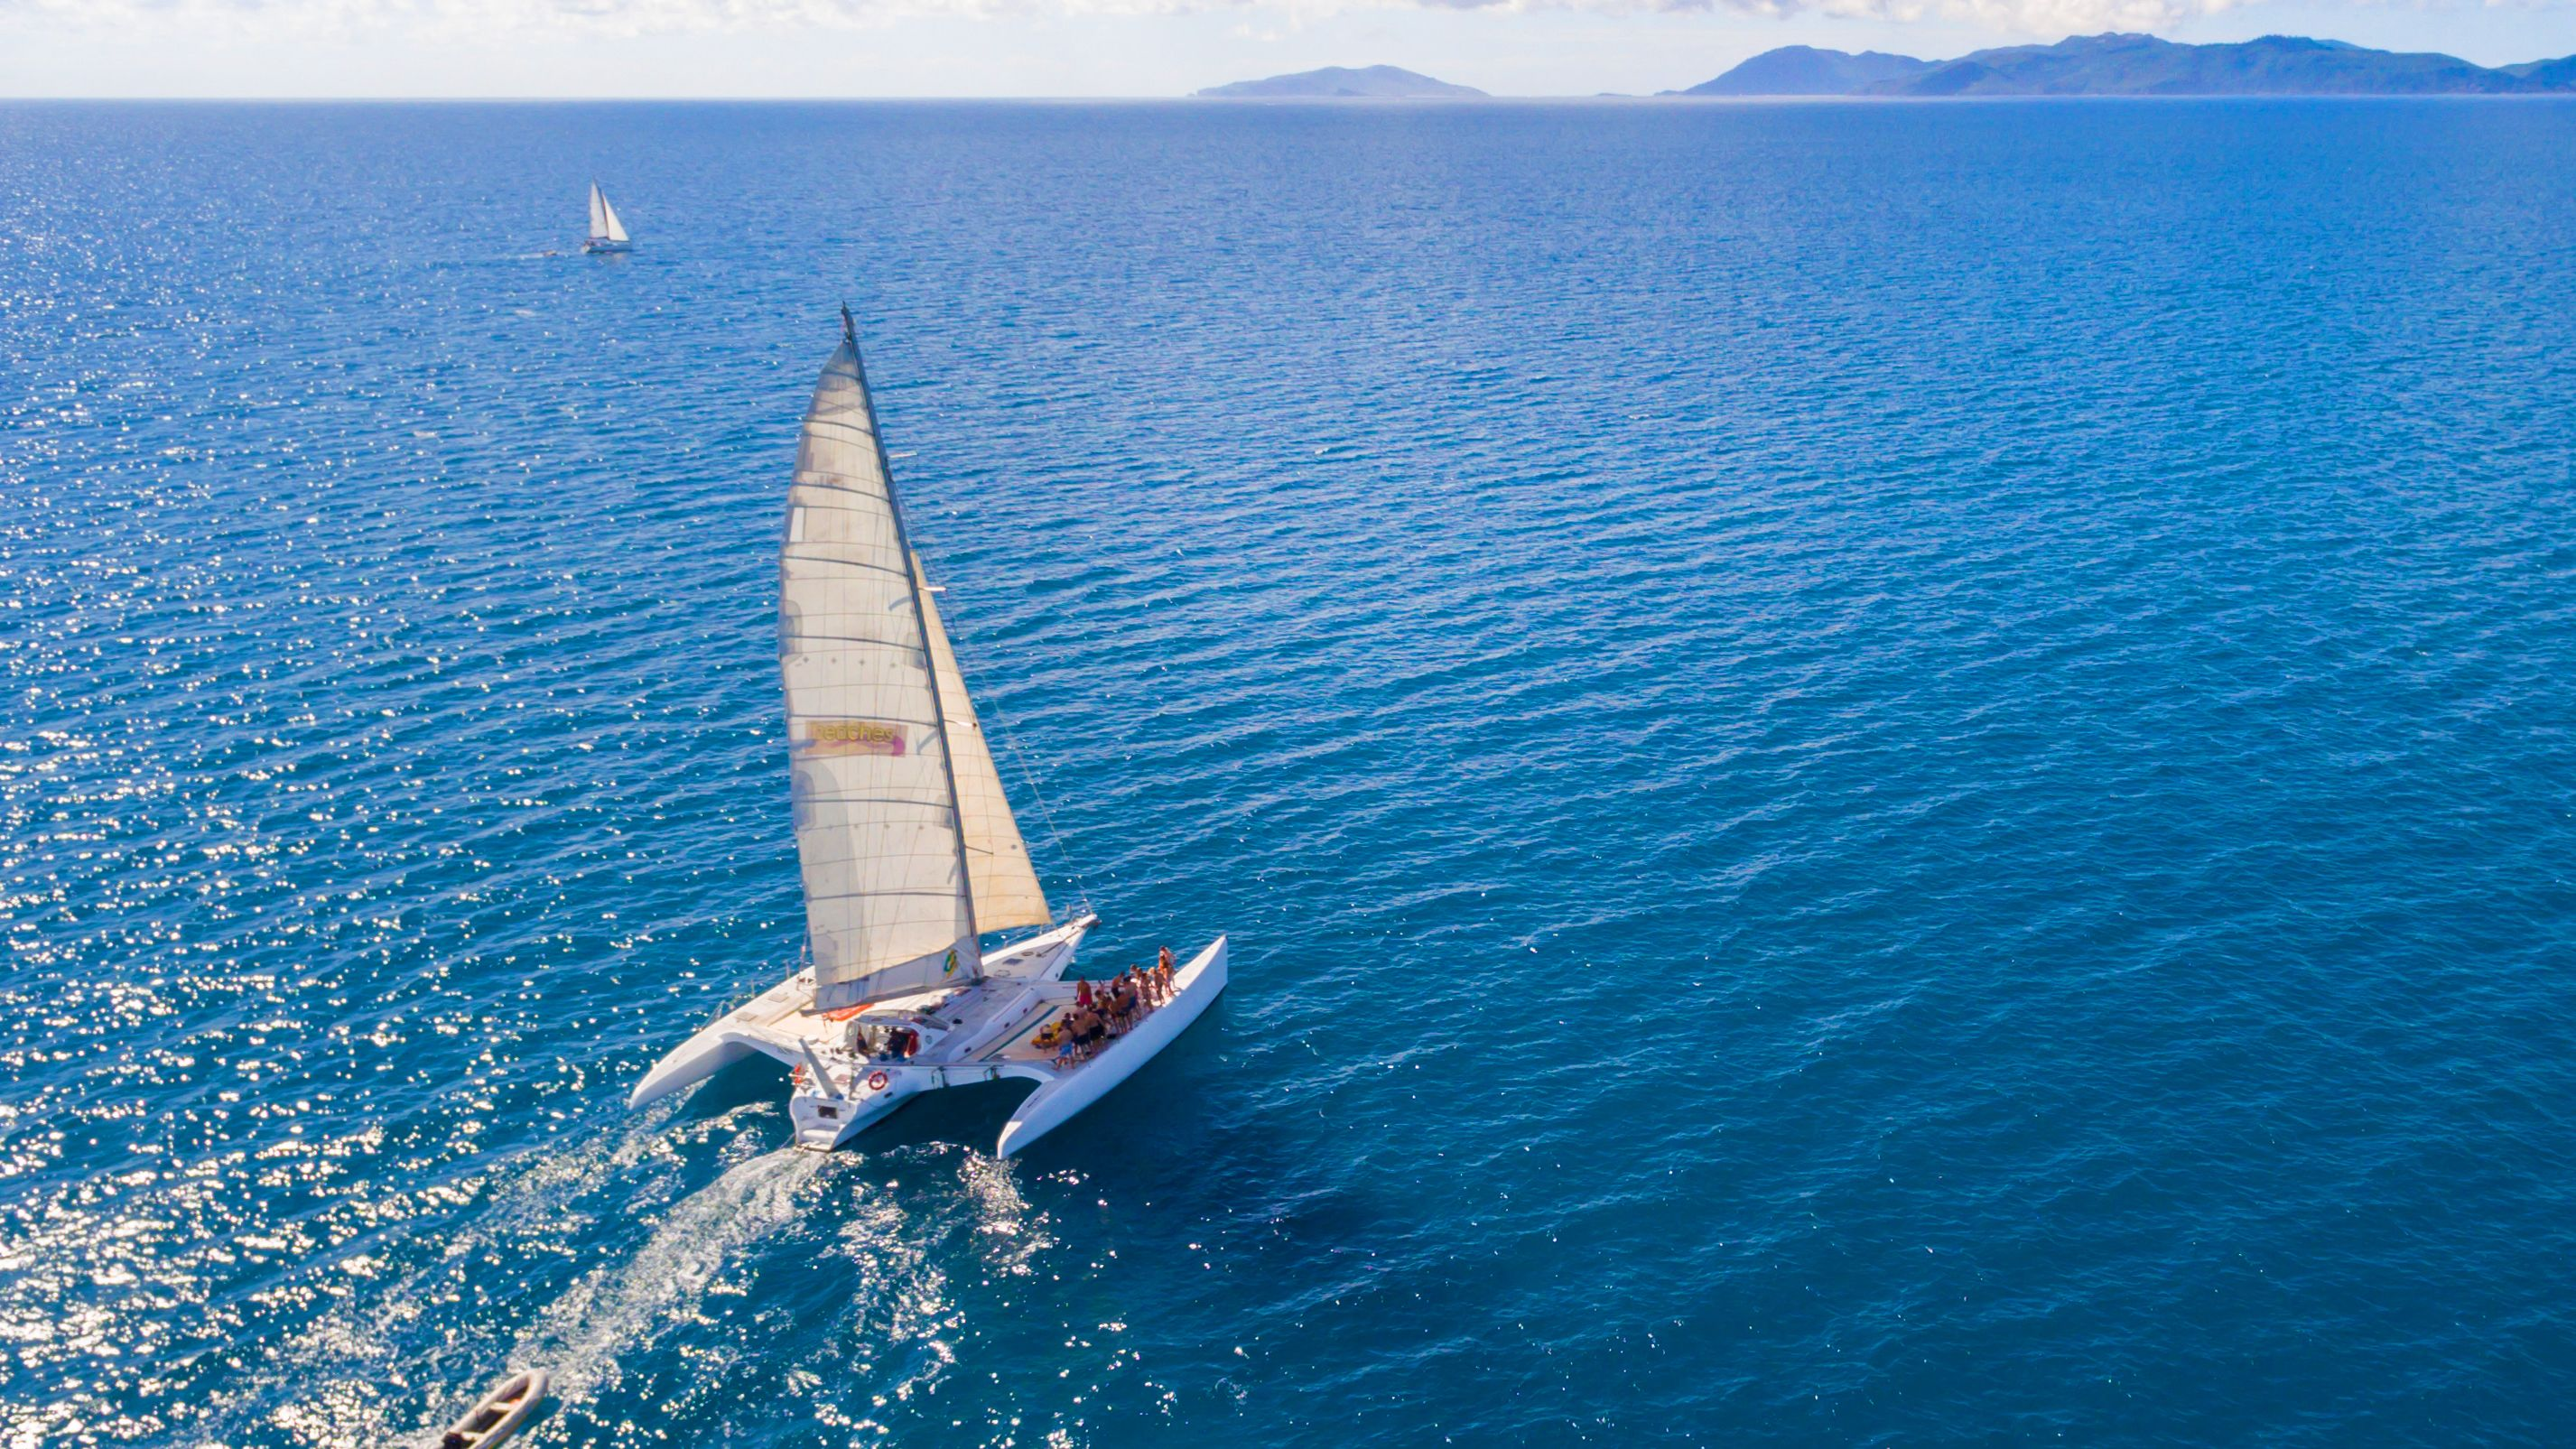 3-Day Sail & Snorkel Adventure in the Whitsunday Islands